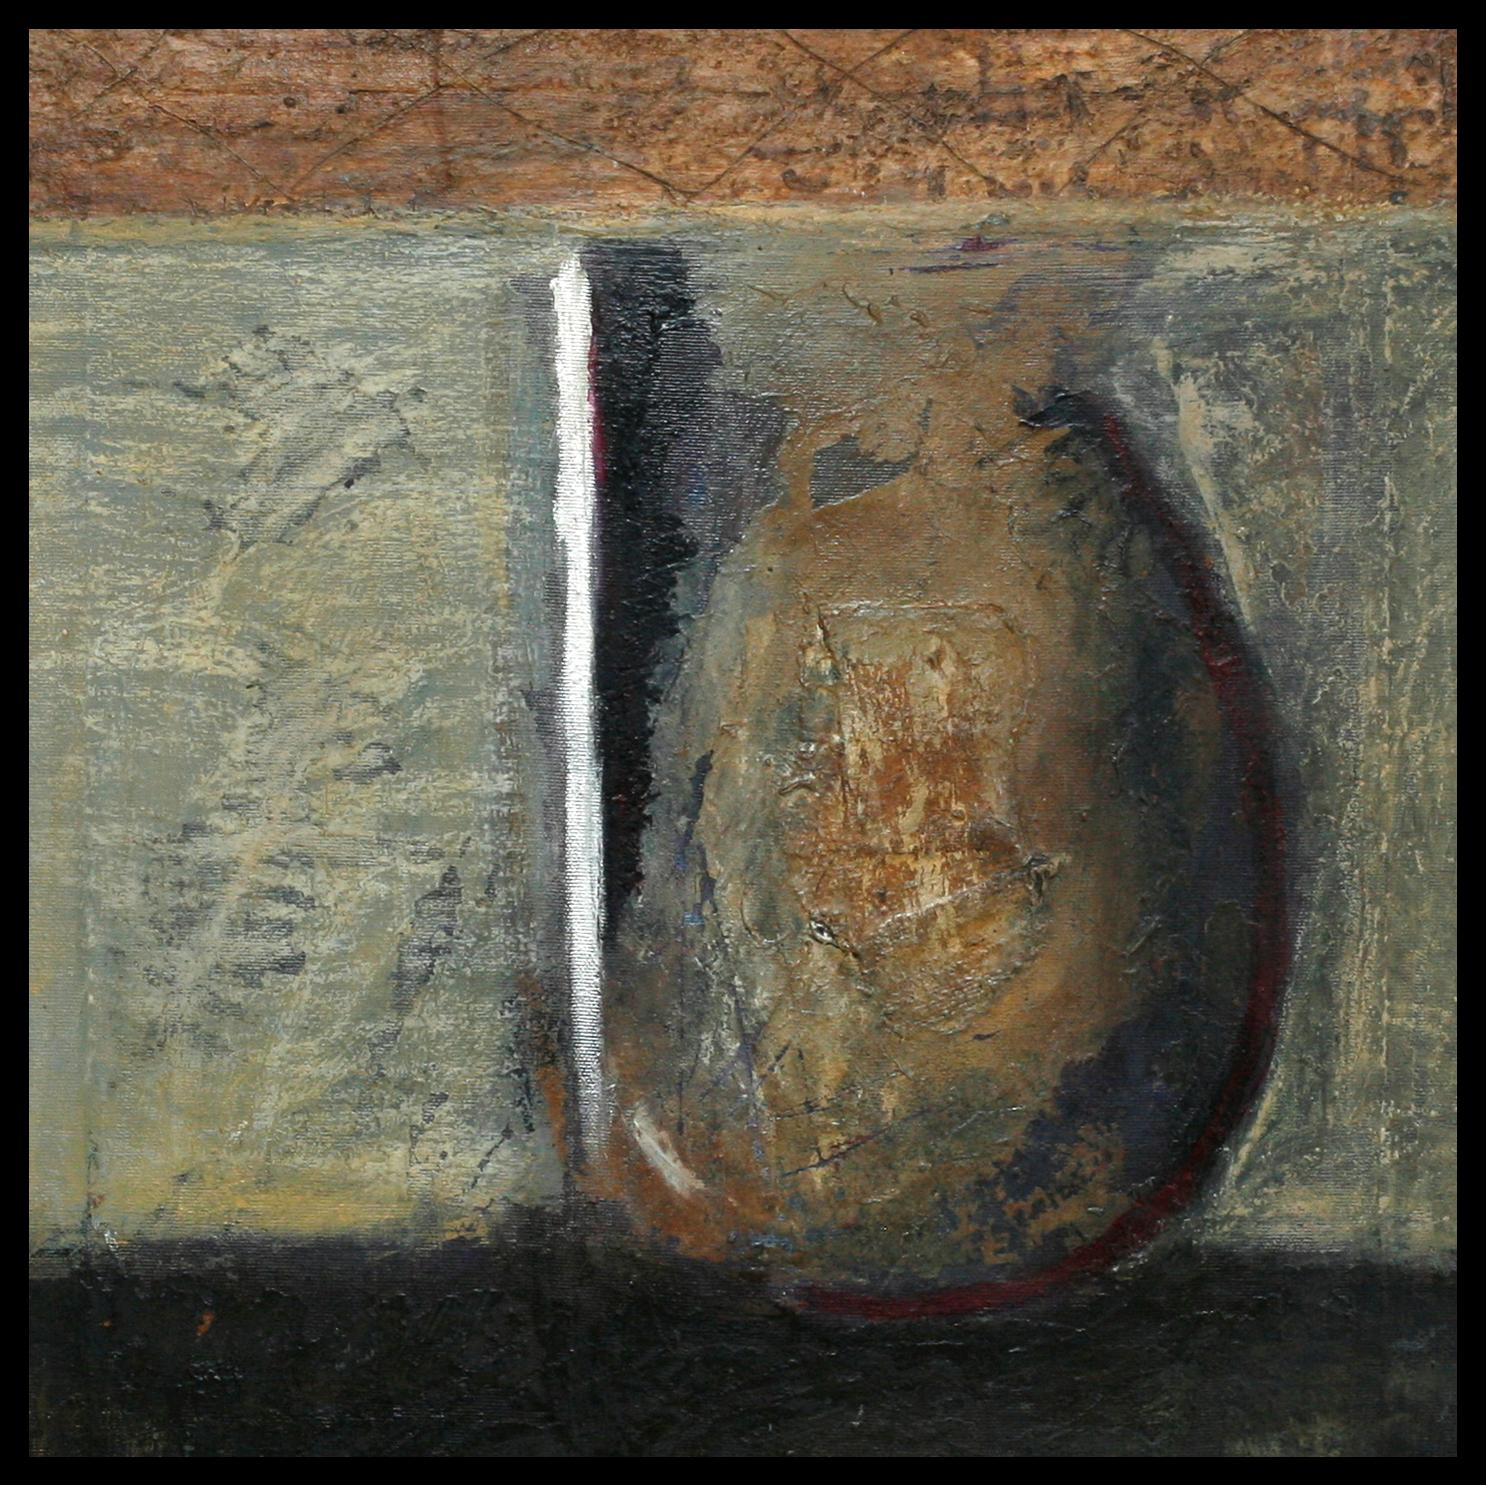 The Egg (50 x 60)